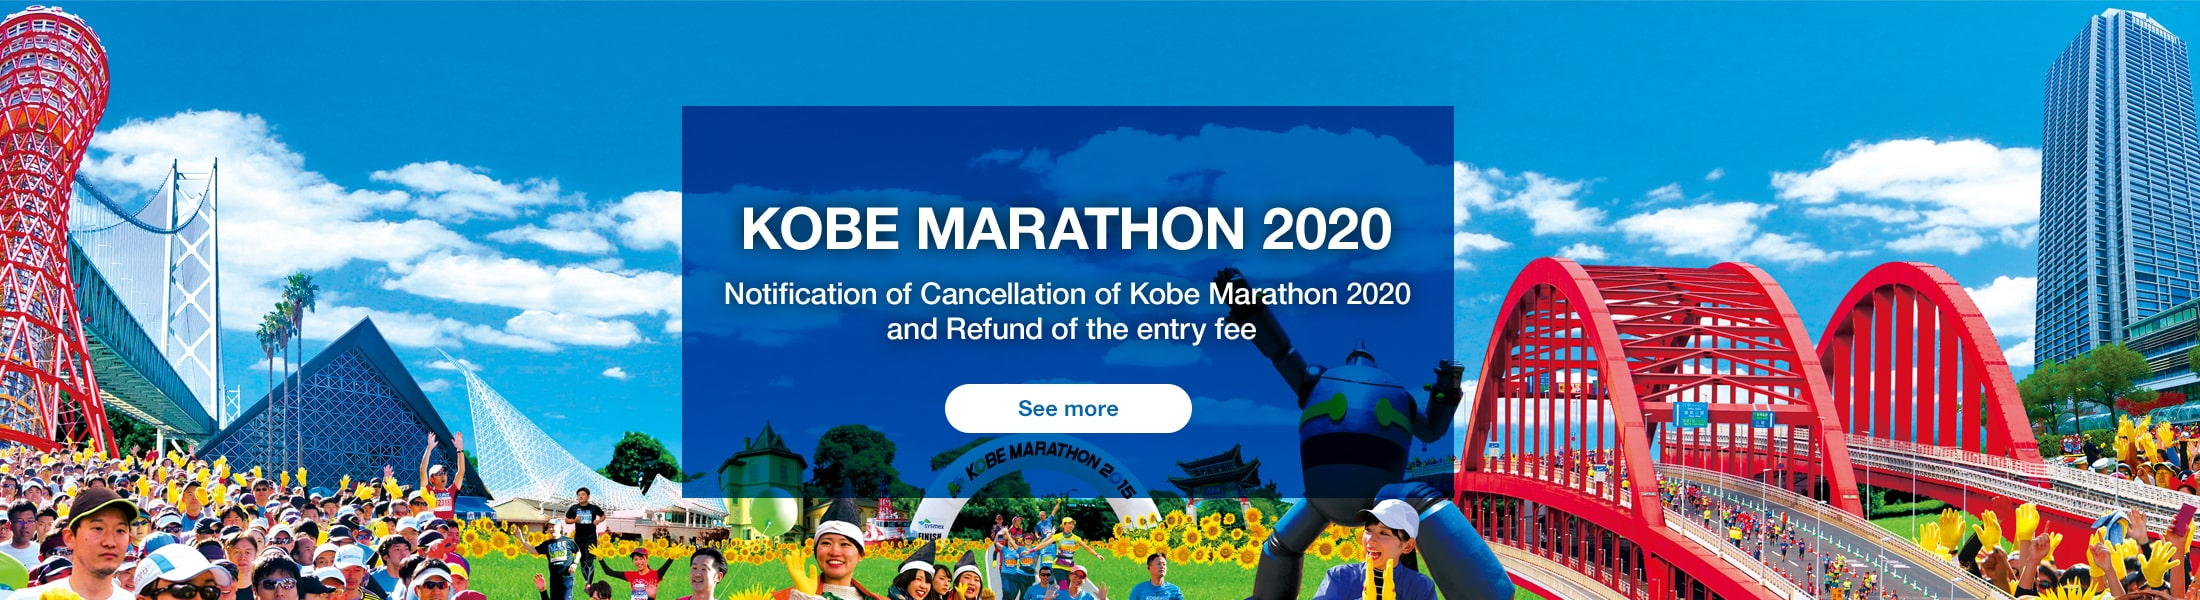 KOBE MARATHON 2020 Notification of Cancellation of Kobe Marathon 2020 and Refund of the entry fee See more